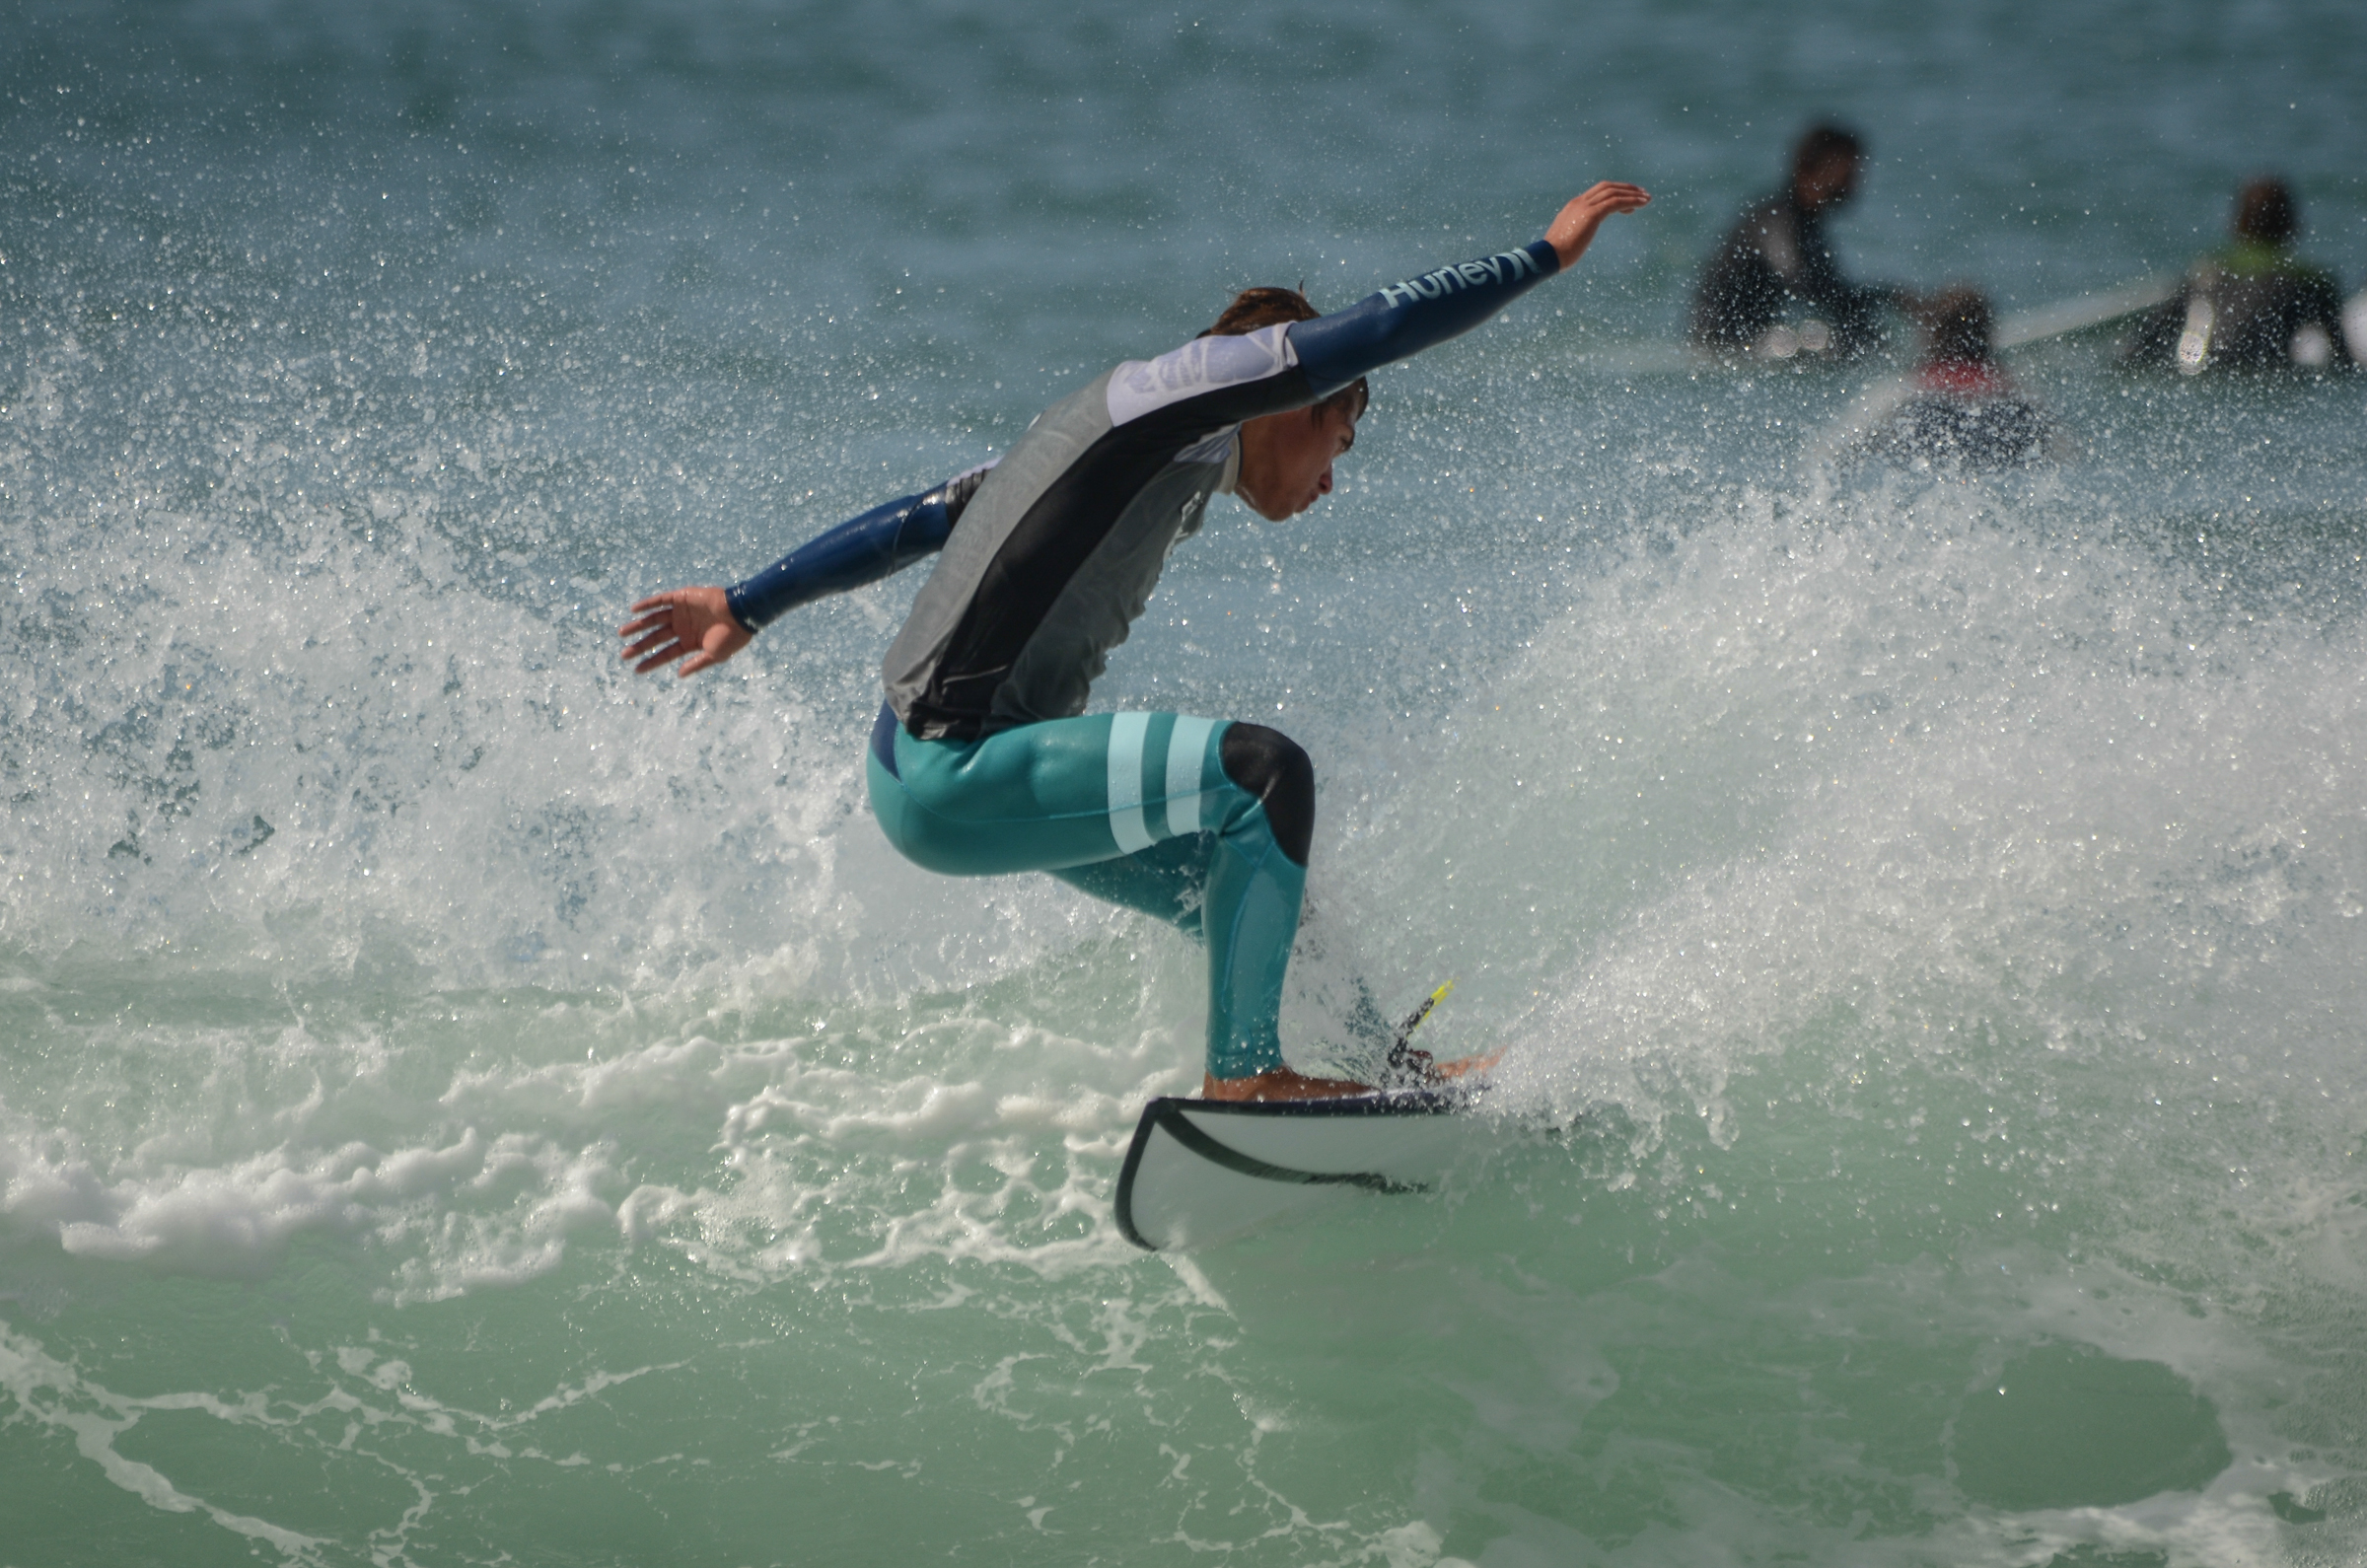 NSL No Pro surf competition at Arrifana beach